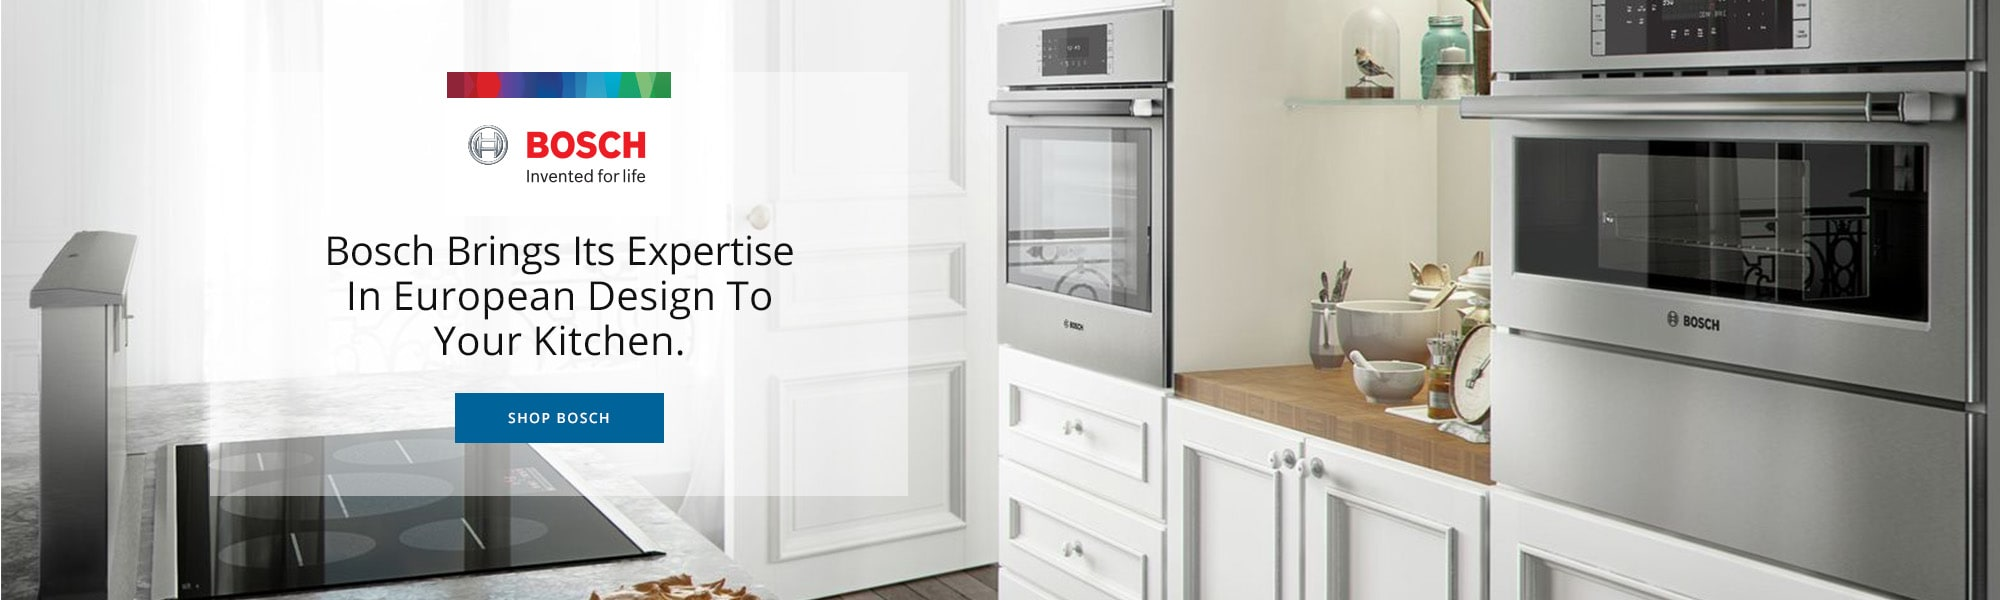 Kitchen Appliance Amp Appliance Repair In Santa Clara